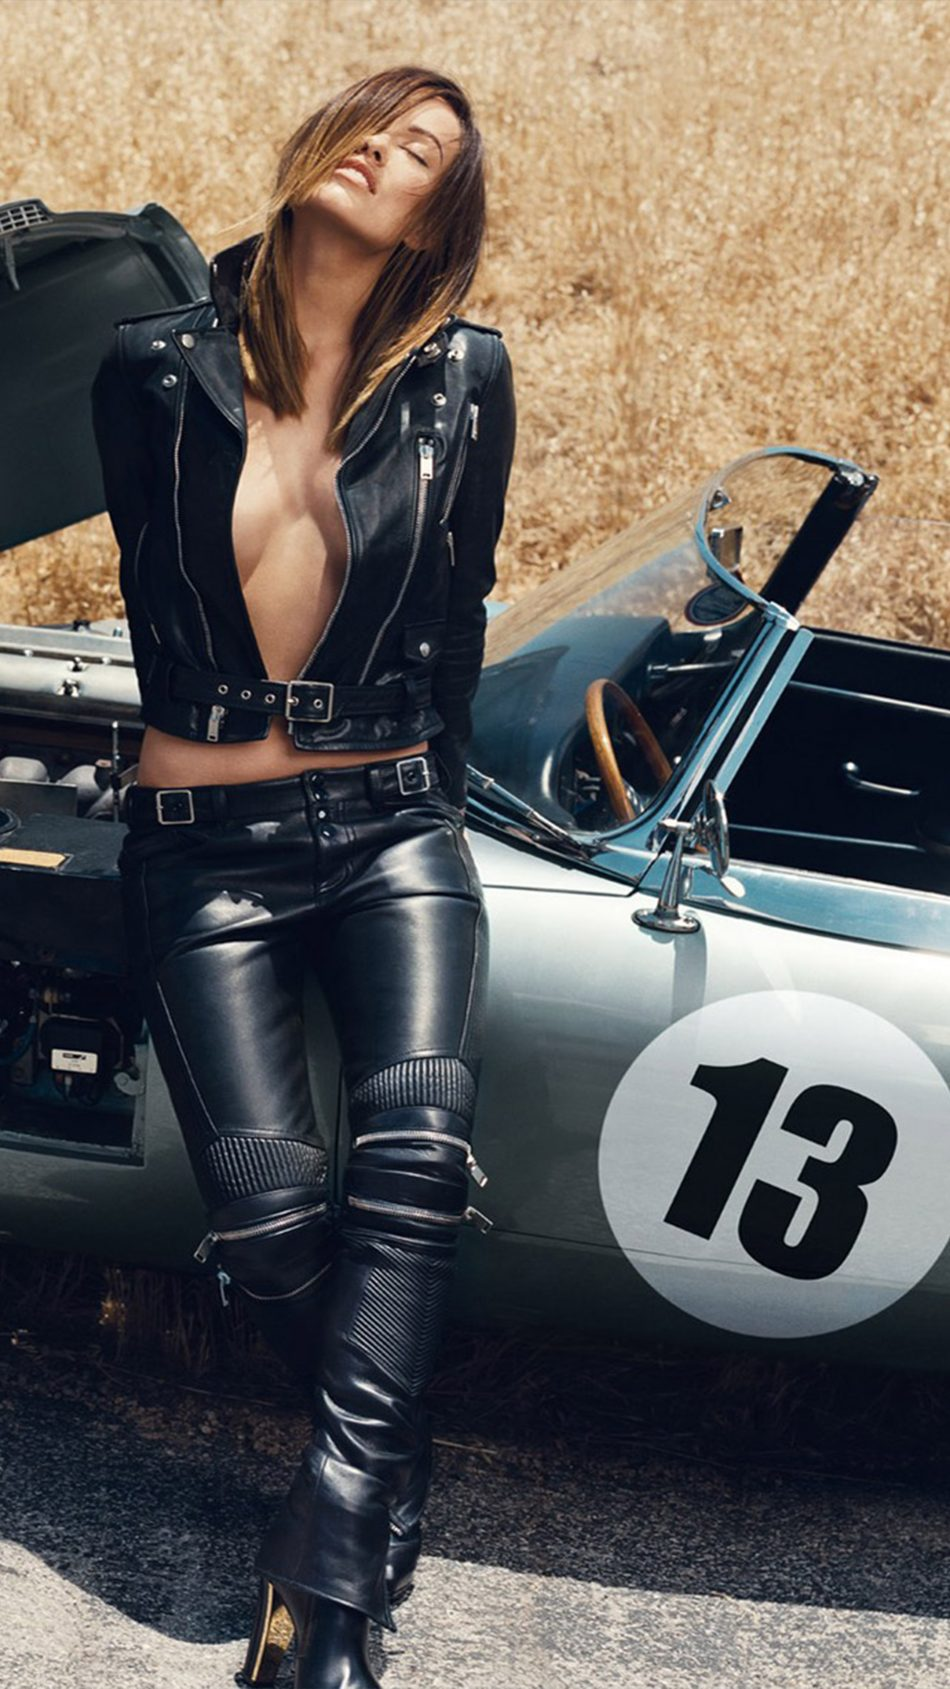 Olivia Wilde Hot Car Photoshoot 4K Ultra HD Mobile Wallpaper